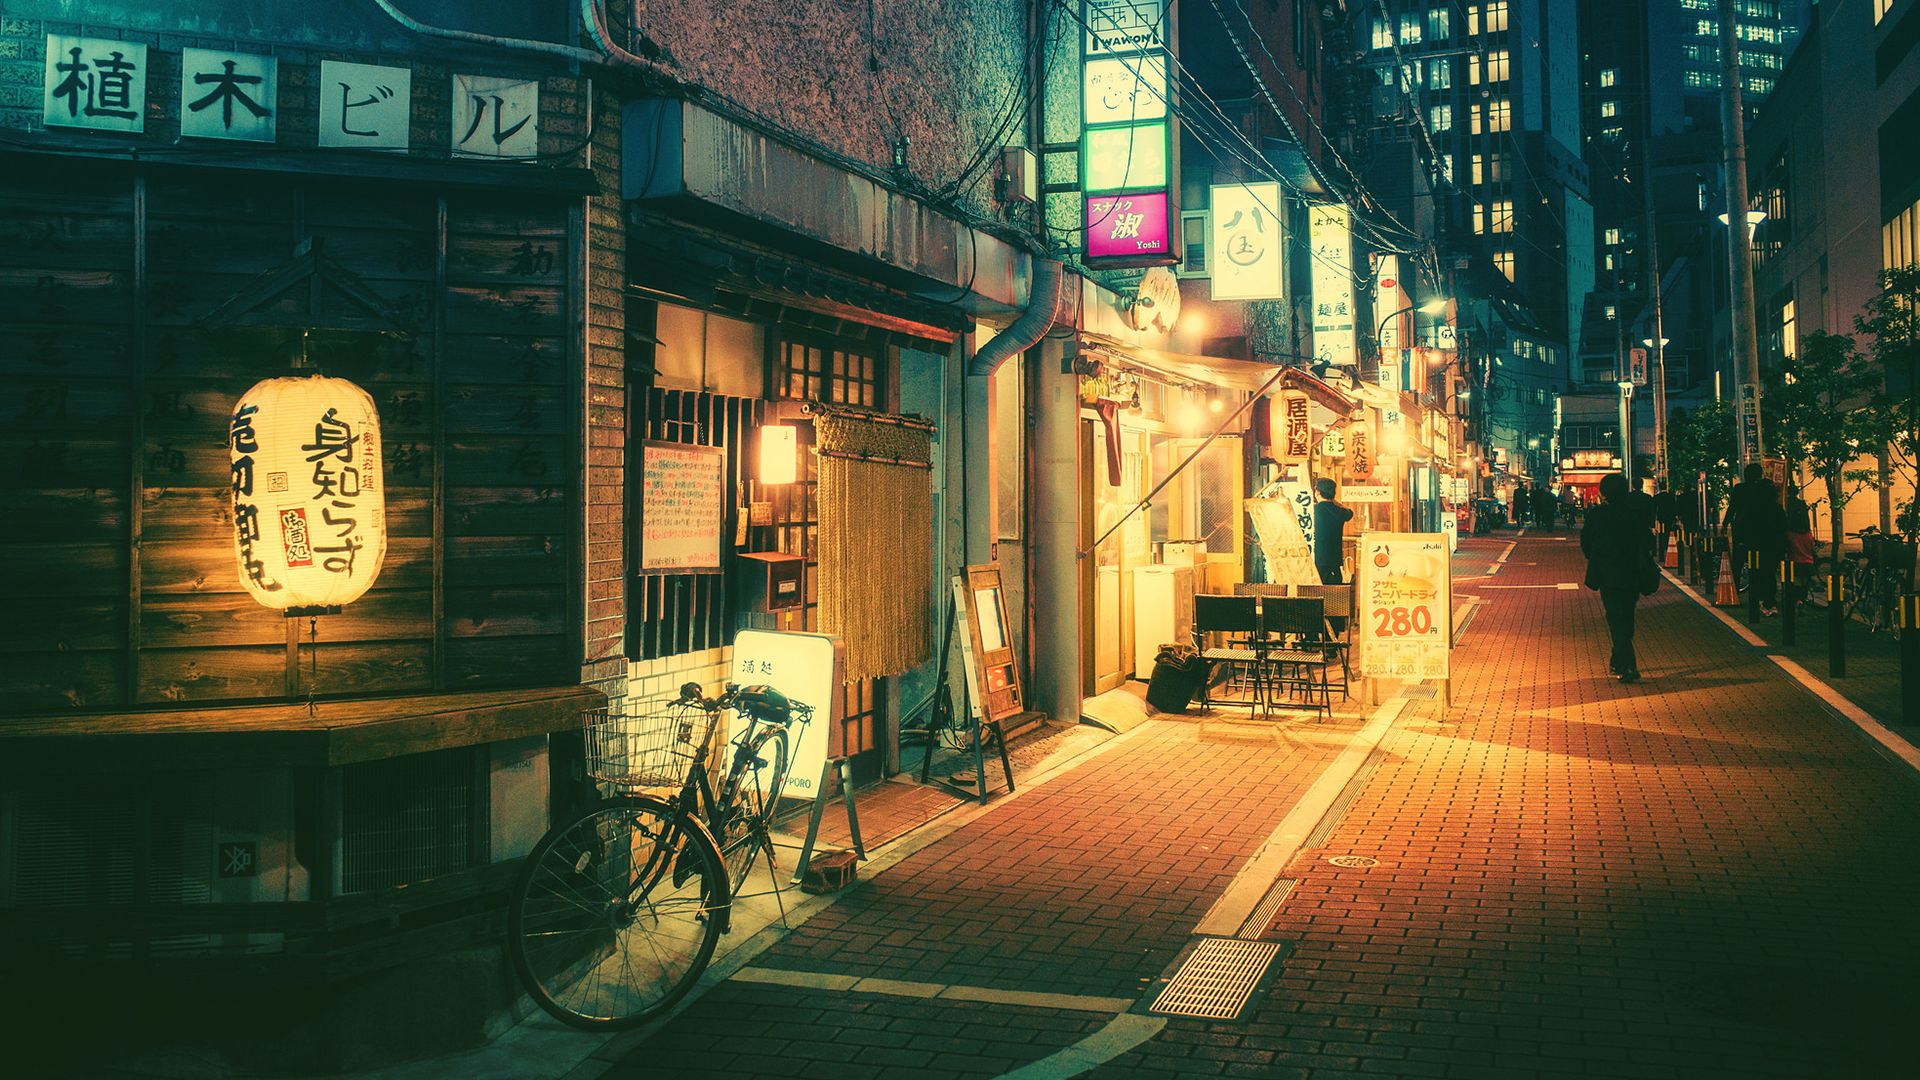 Tokyo After Work 1920x1080 R Wallpapers Anime City Night Photos Photo